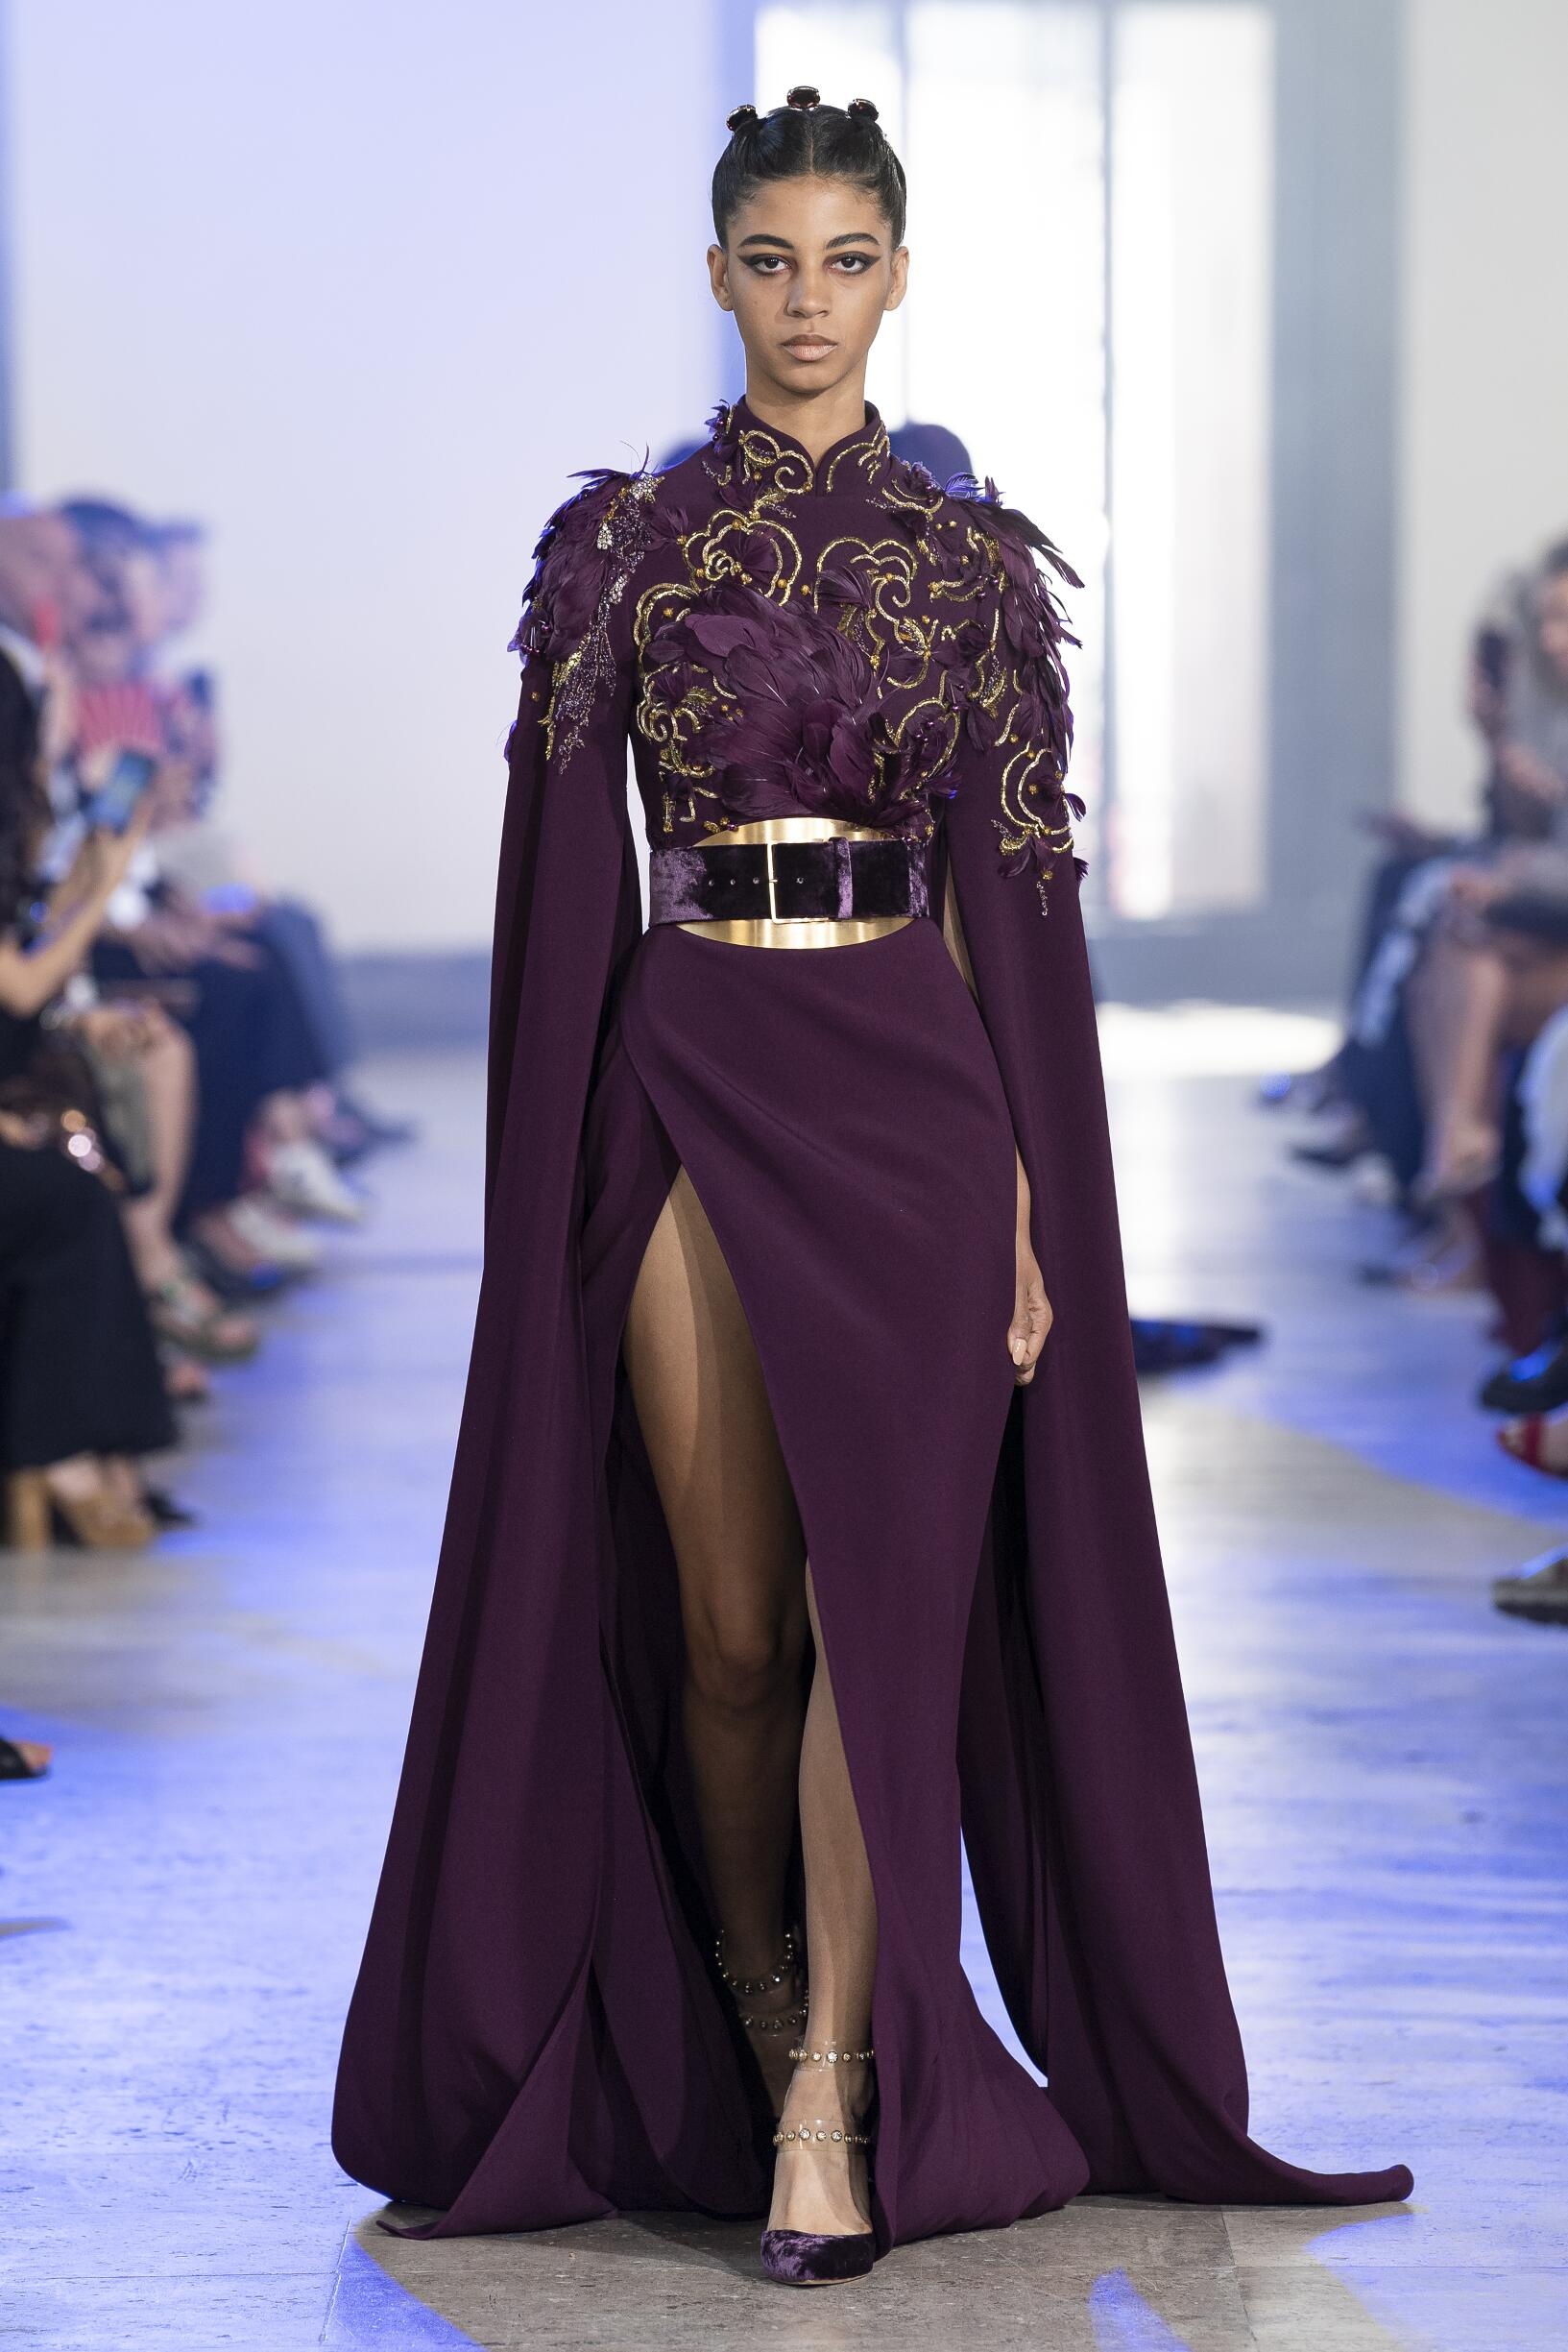 2019-20 Elie Saab Haute Couture Fall Catwalk